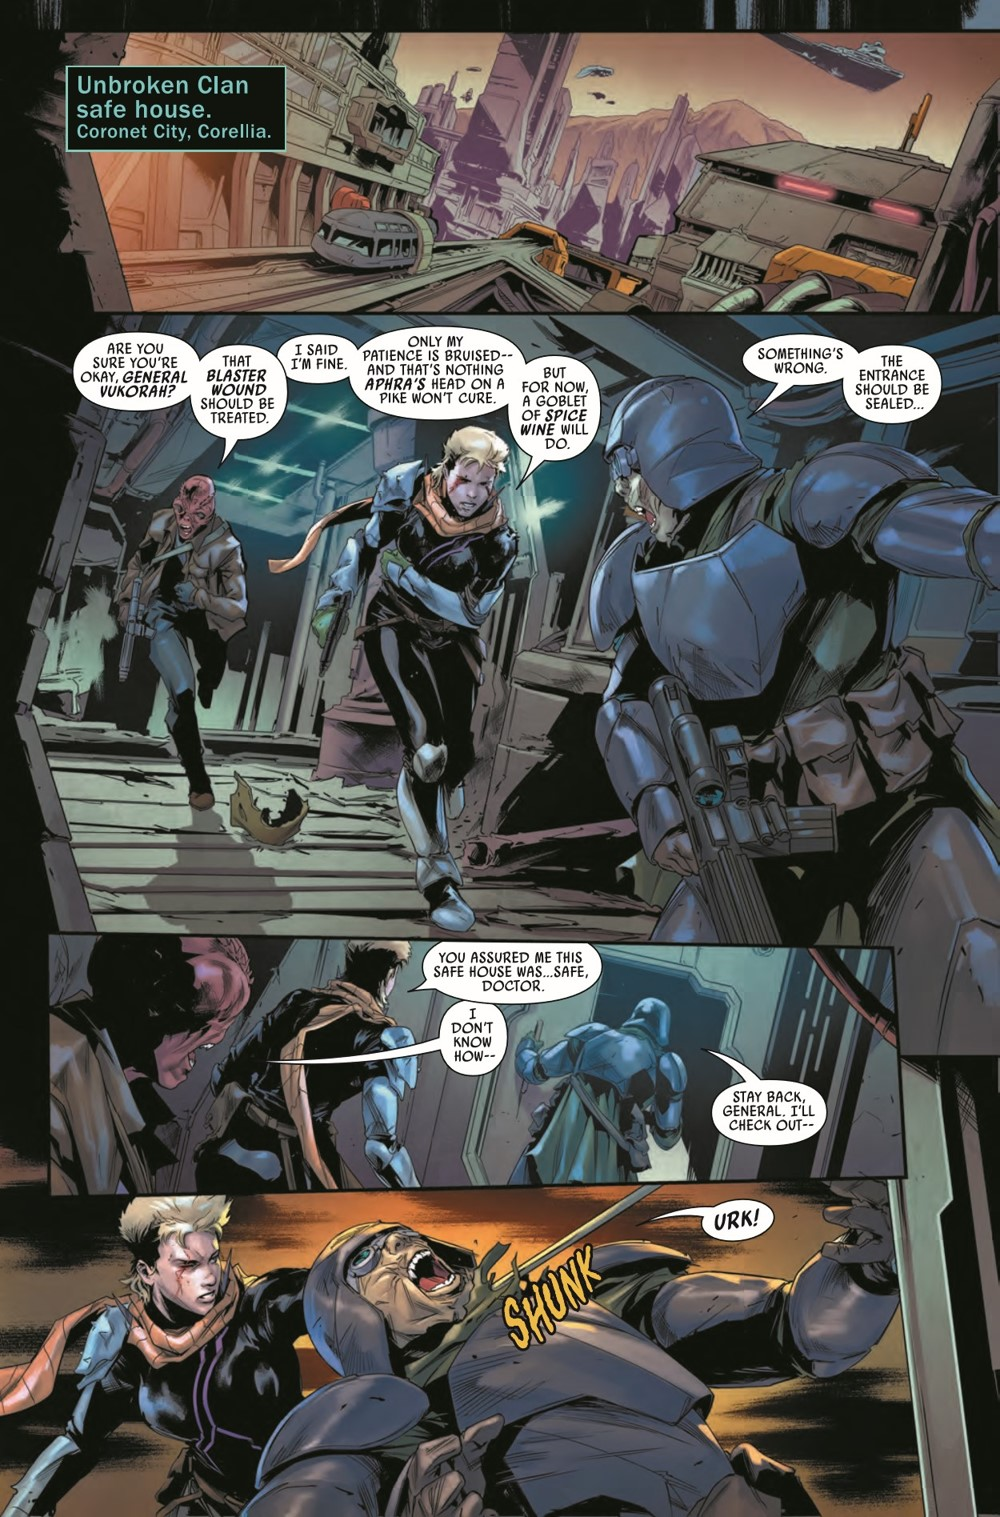 STWBOUNTYHUNT2020015_Preview-3 ComicList Previews: STAR WARS BOUNTY HUNTERS #15